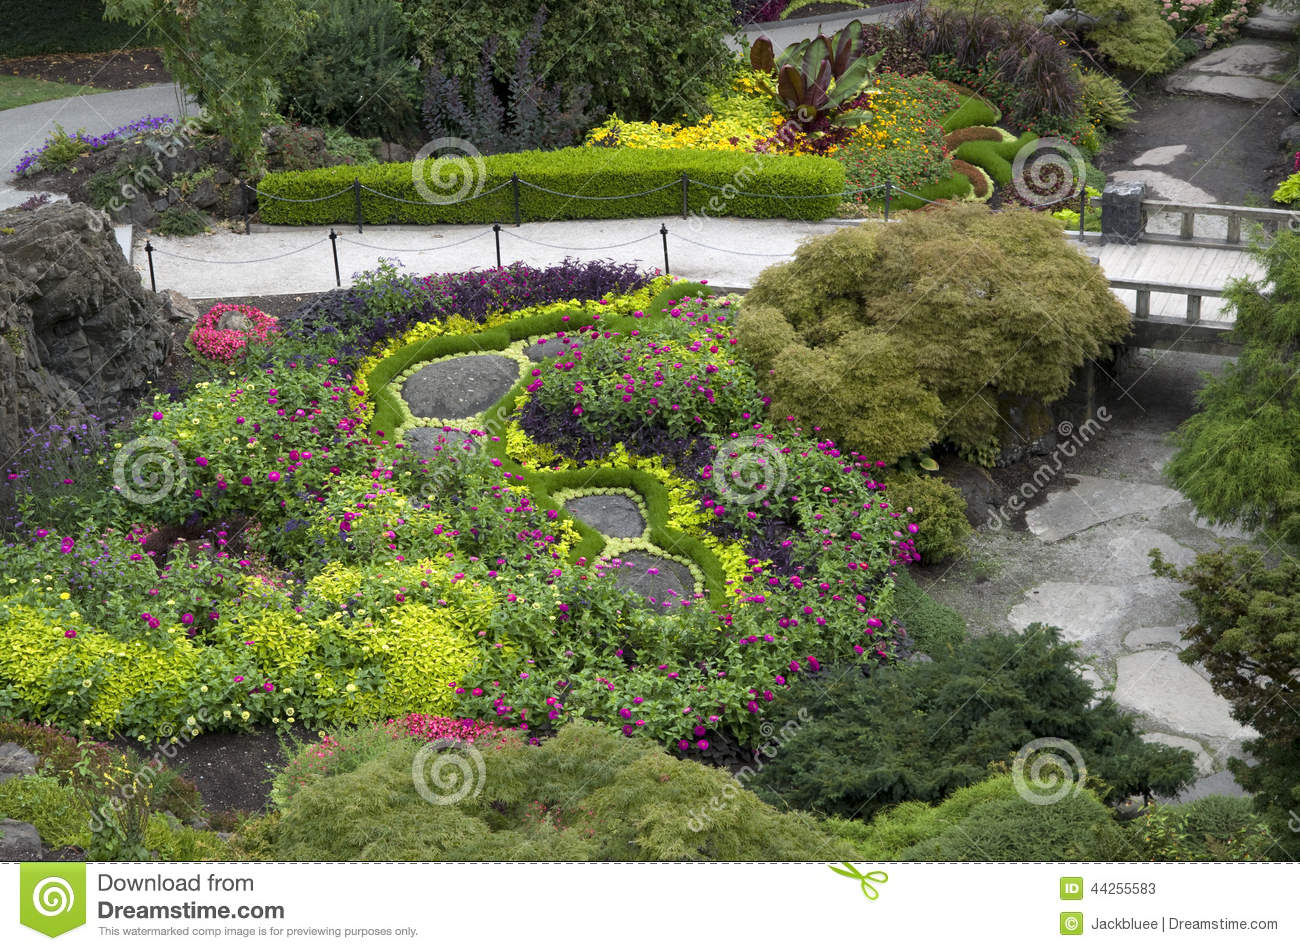 Garden design stock photo image 44255583 for Garden design queens park